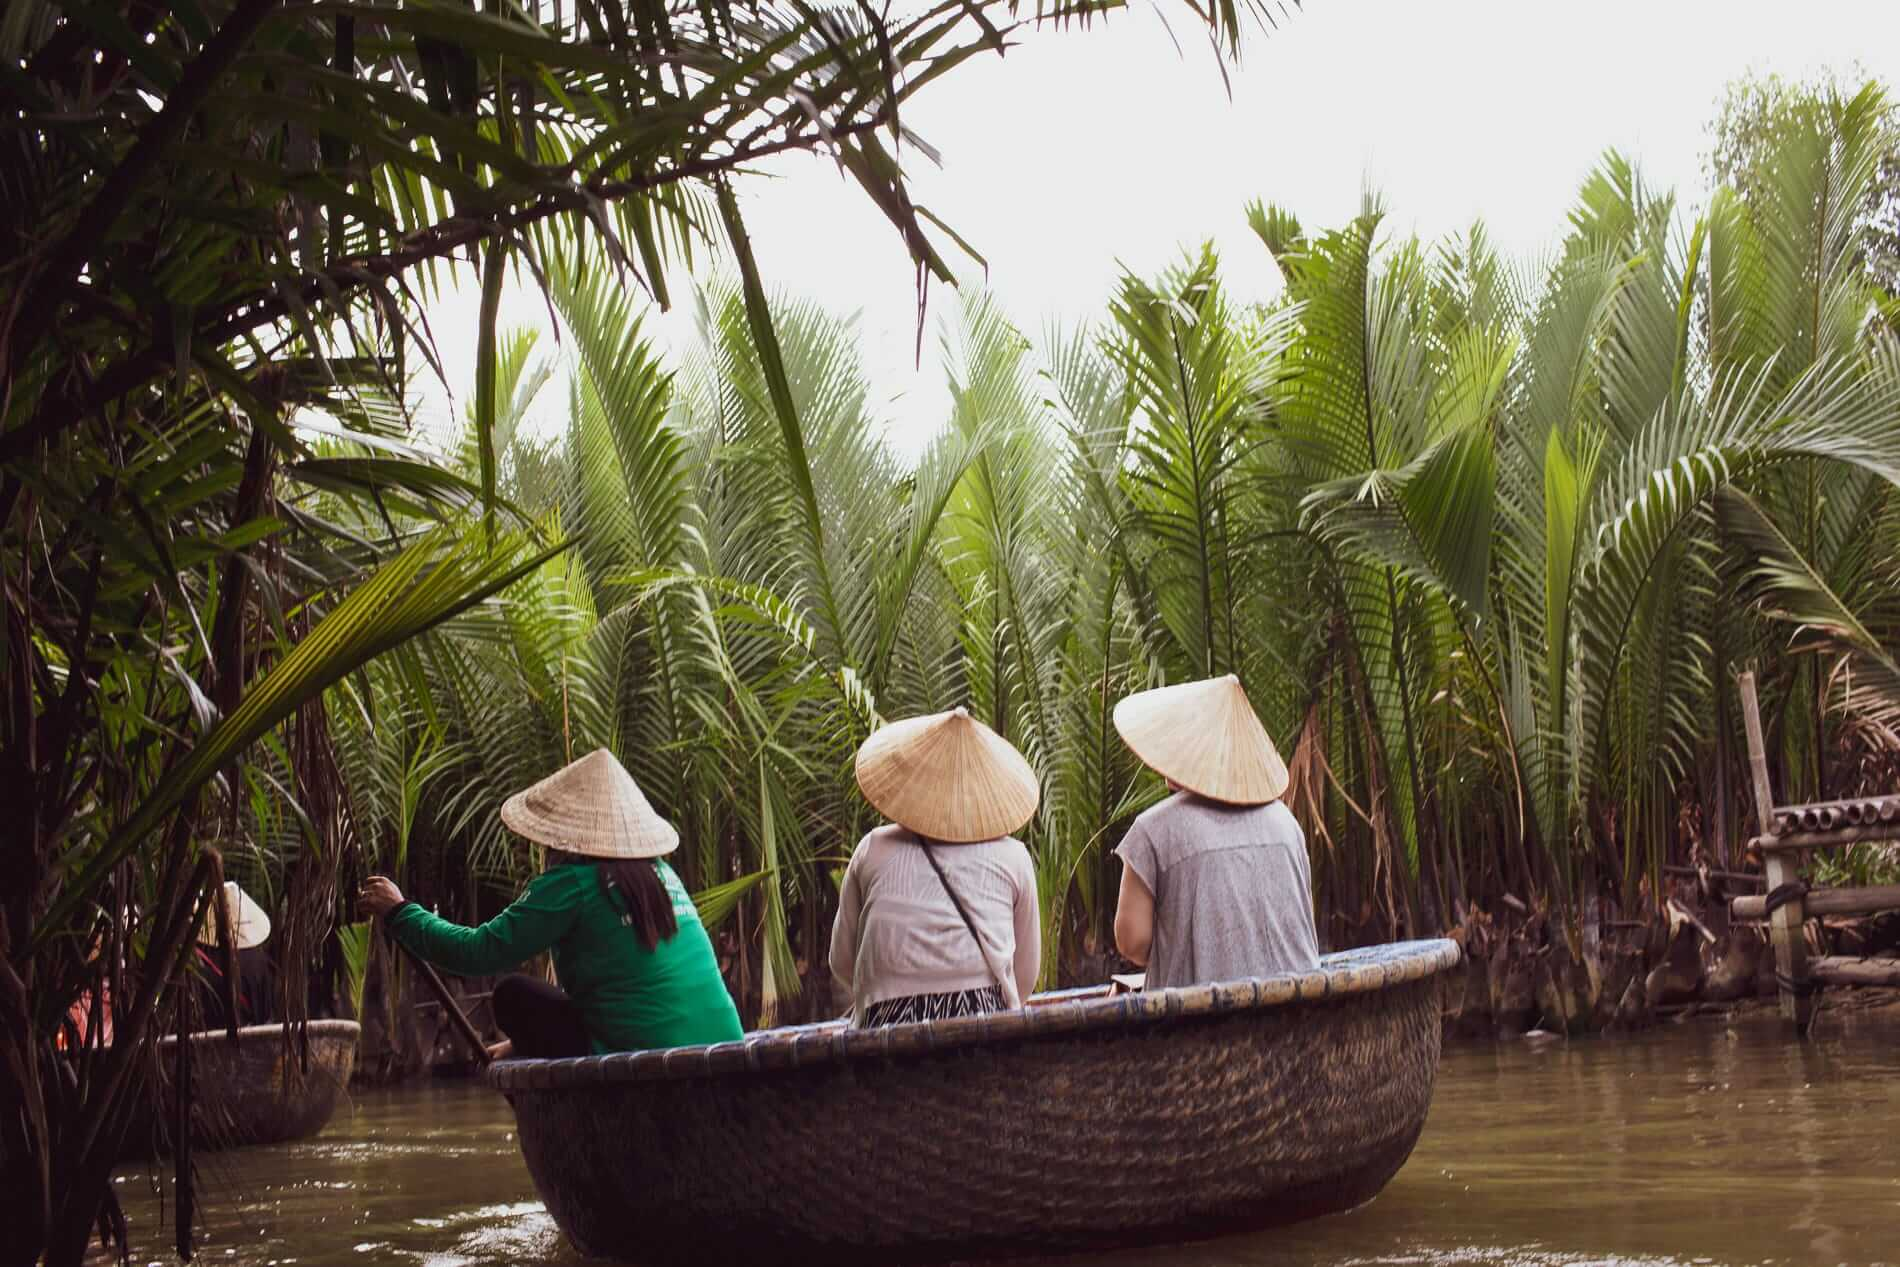 A basket boat and tourists